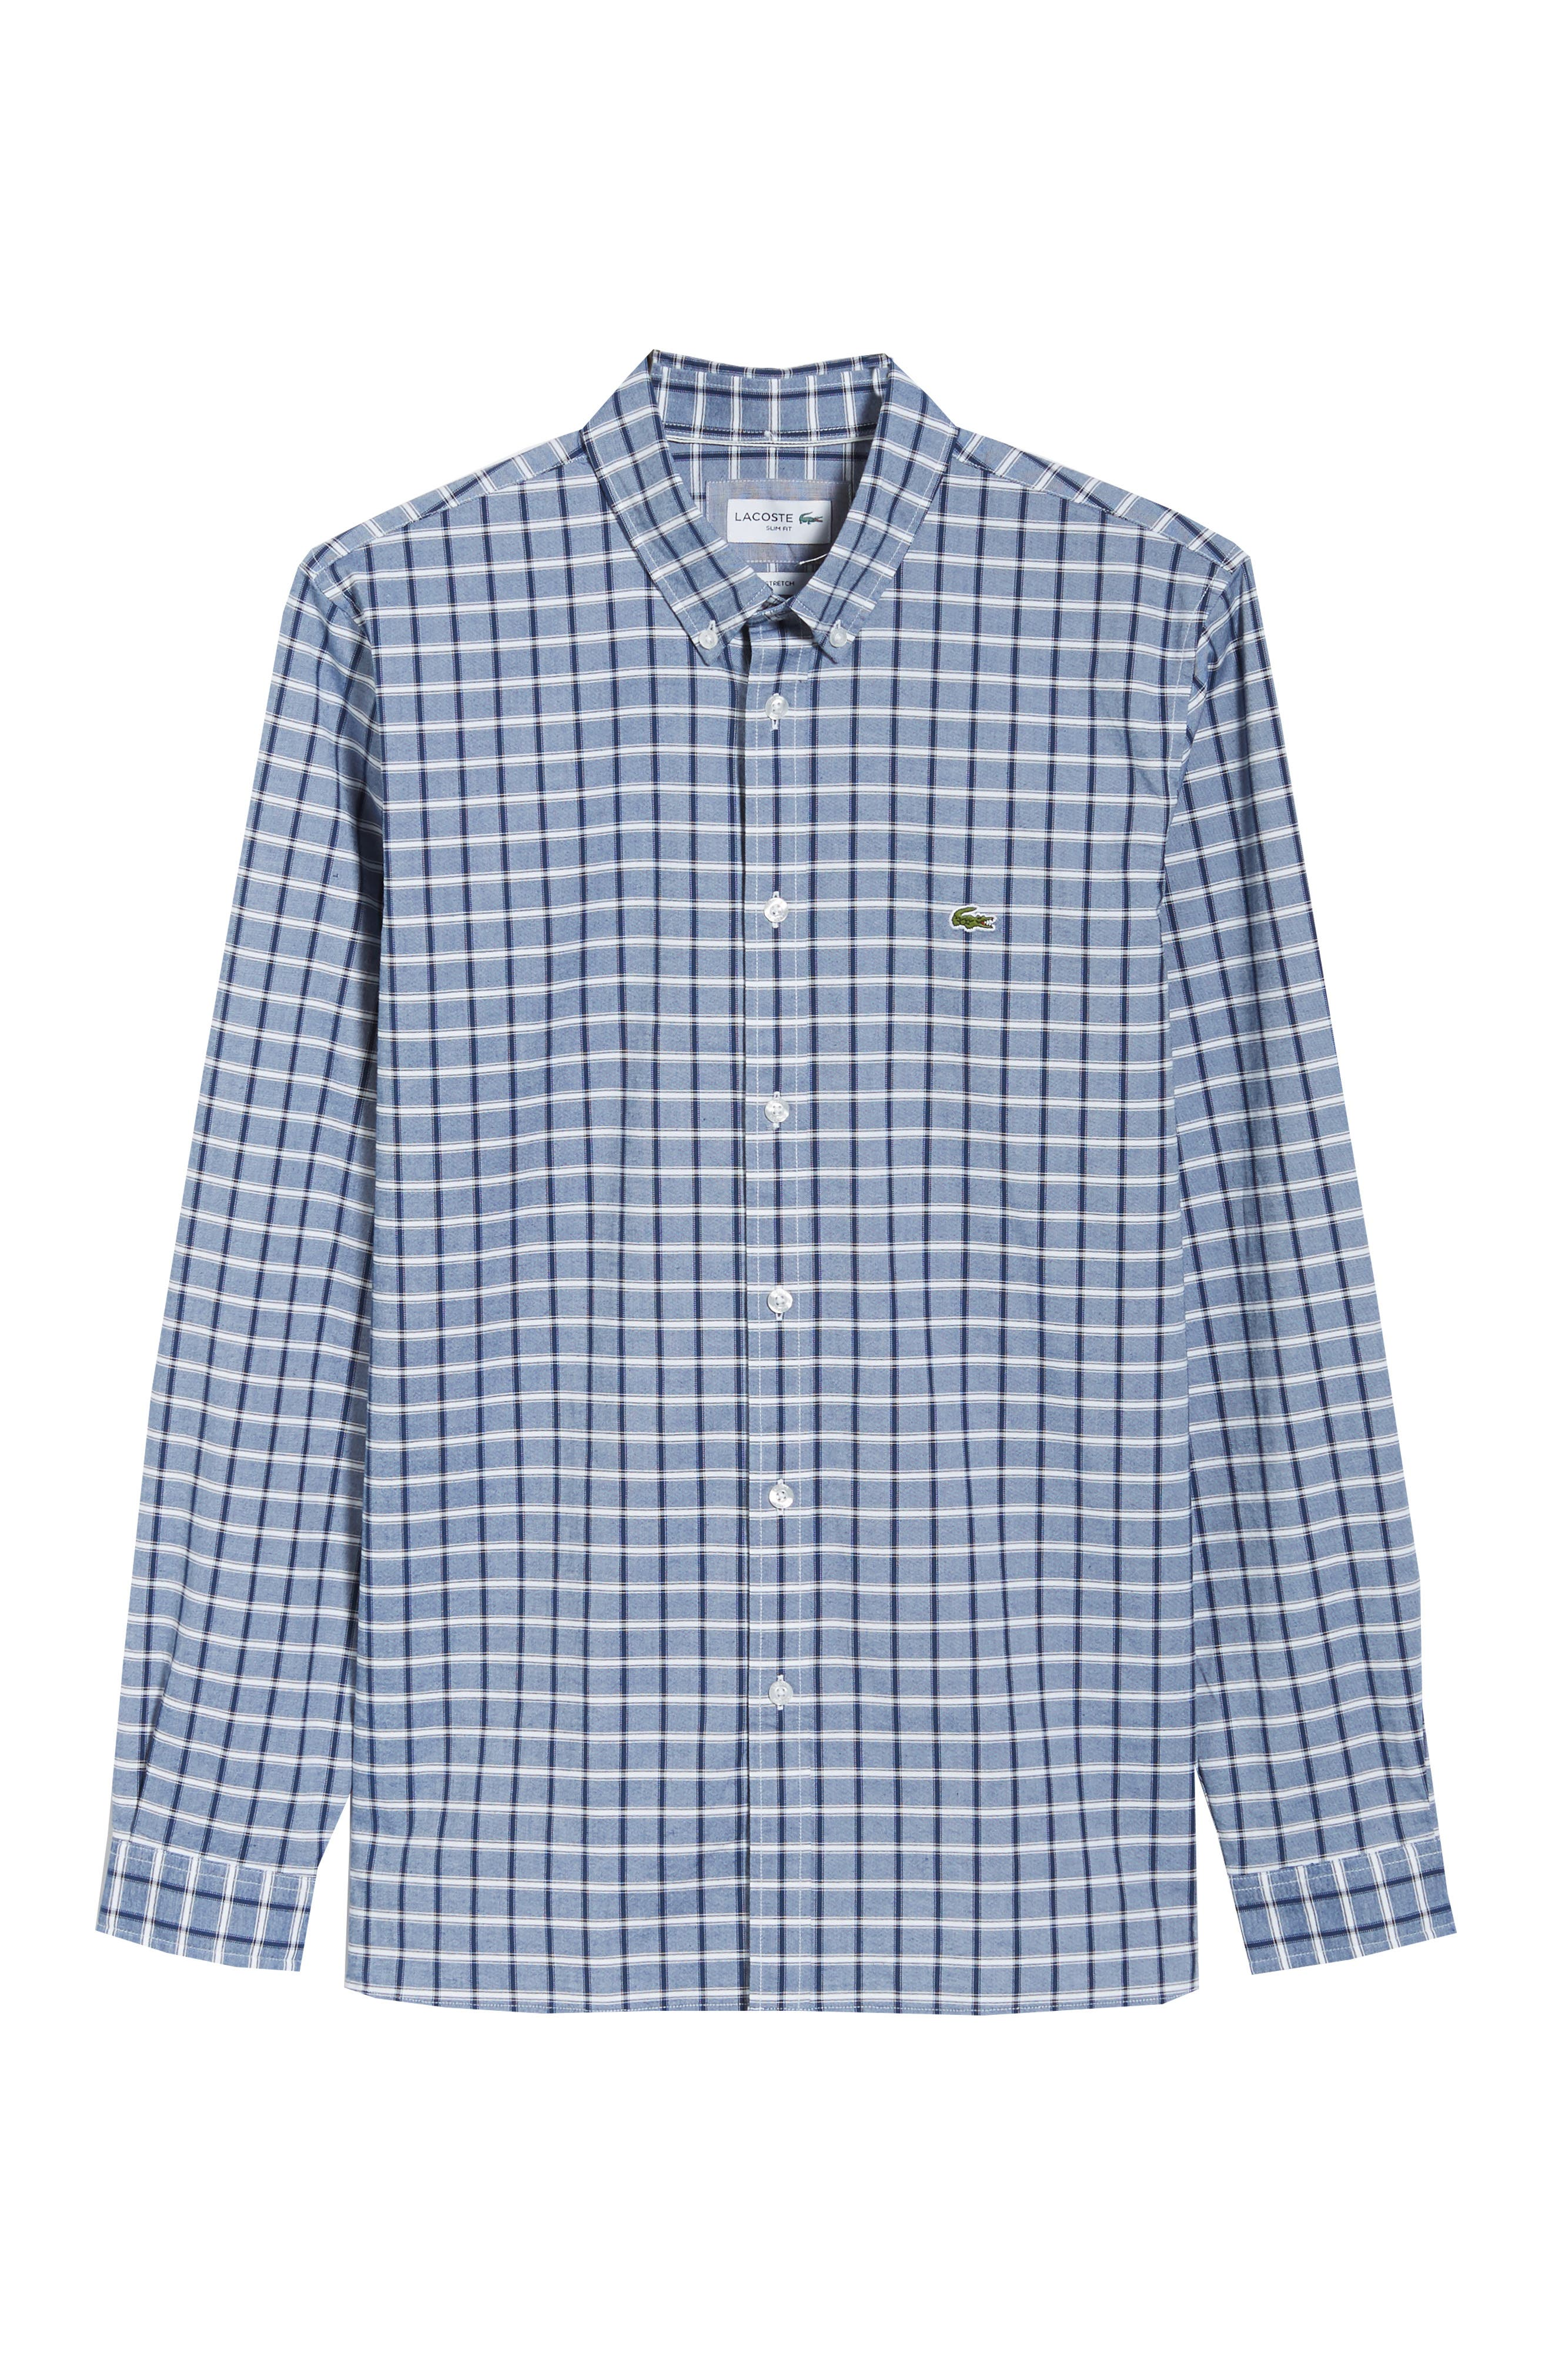 Slim Fit Check Oxford Sport Shirt,                             Alternate thumbnail 6, color,                             410